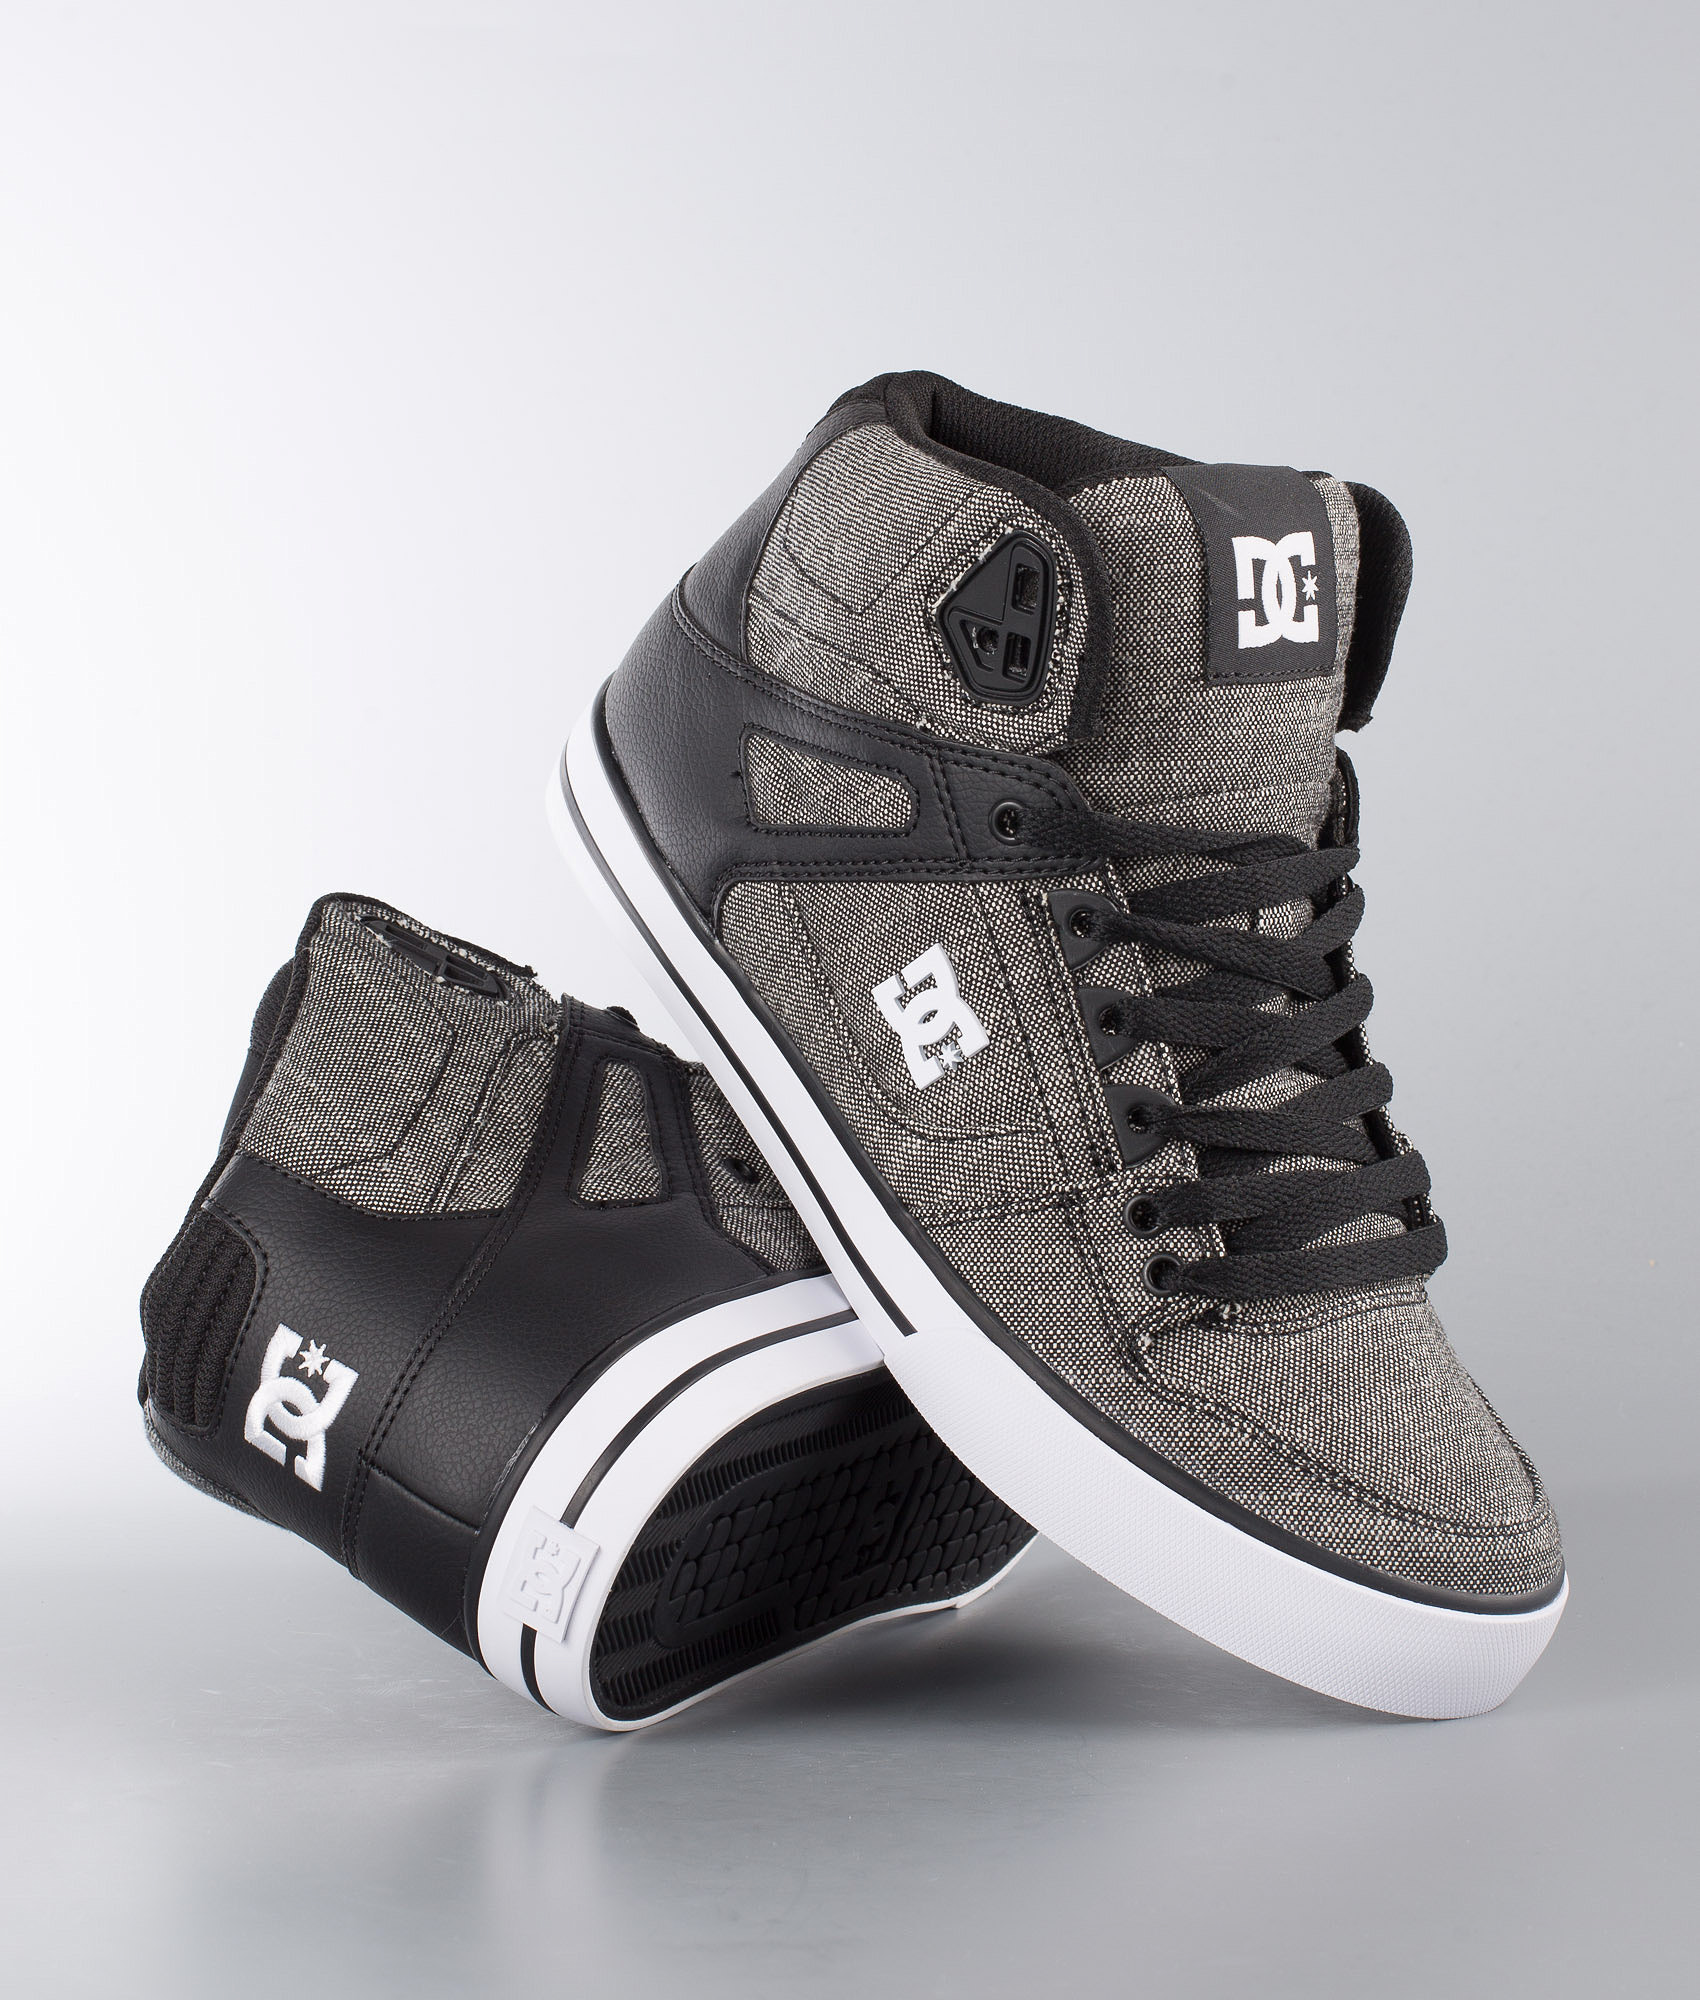 7f0223b430 DC Pure High-Top WC TX SE Shoes Black Grey White - Ridestore.com